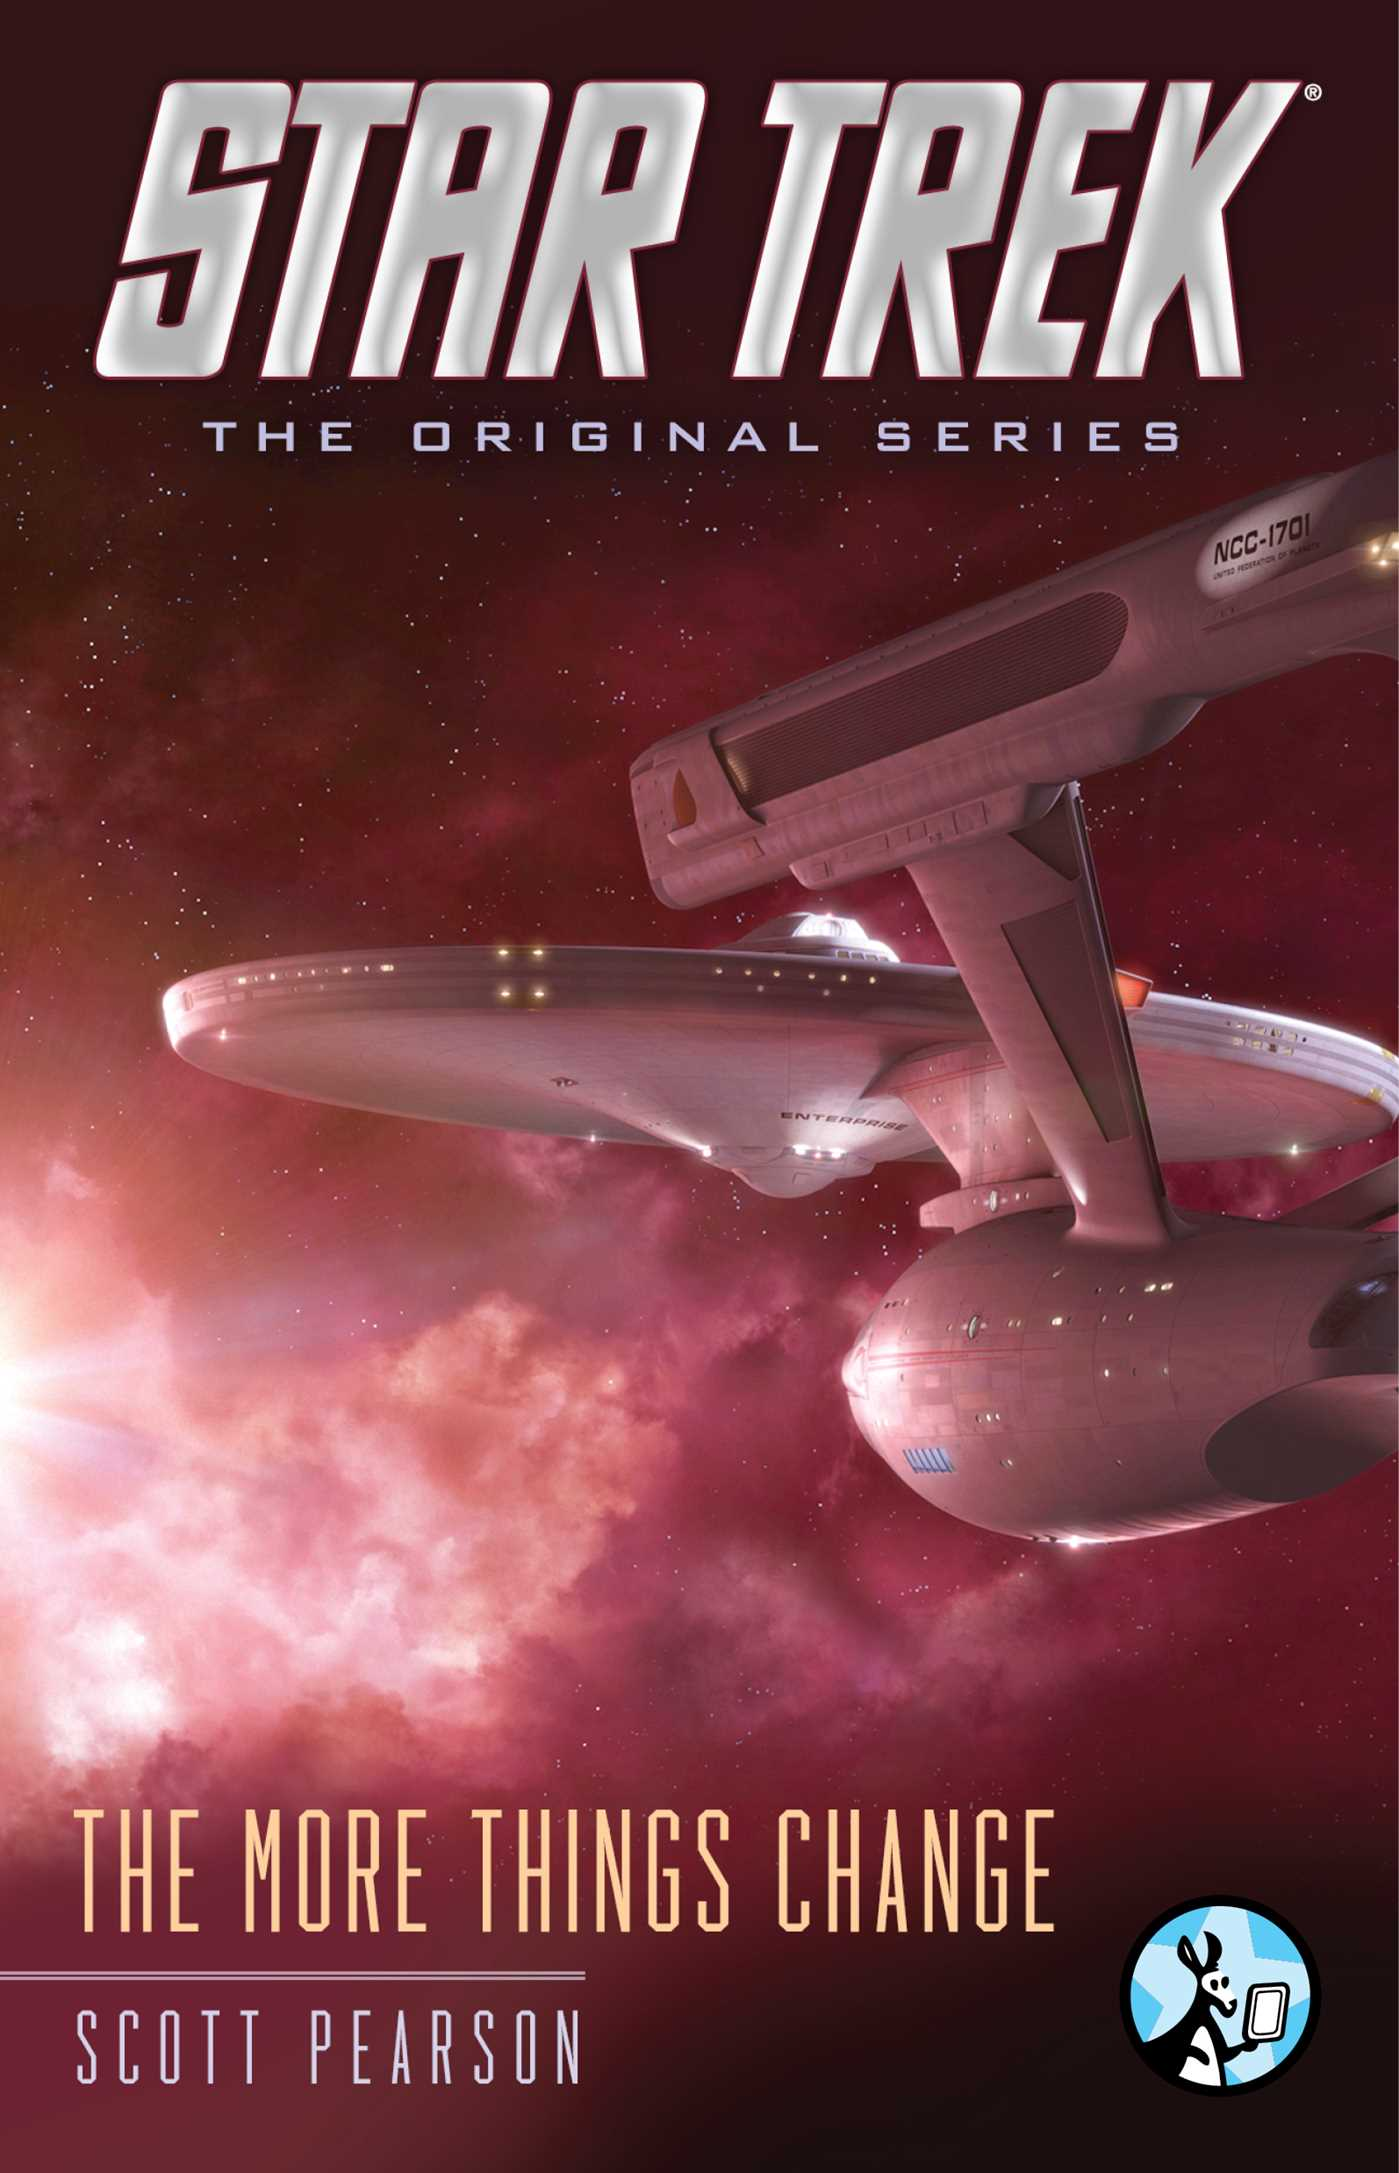 Star-trek-the-original-series-the-more-things-change-9781476763750_hr